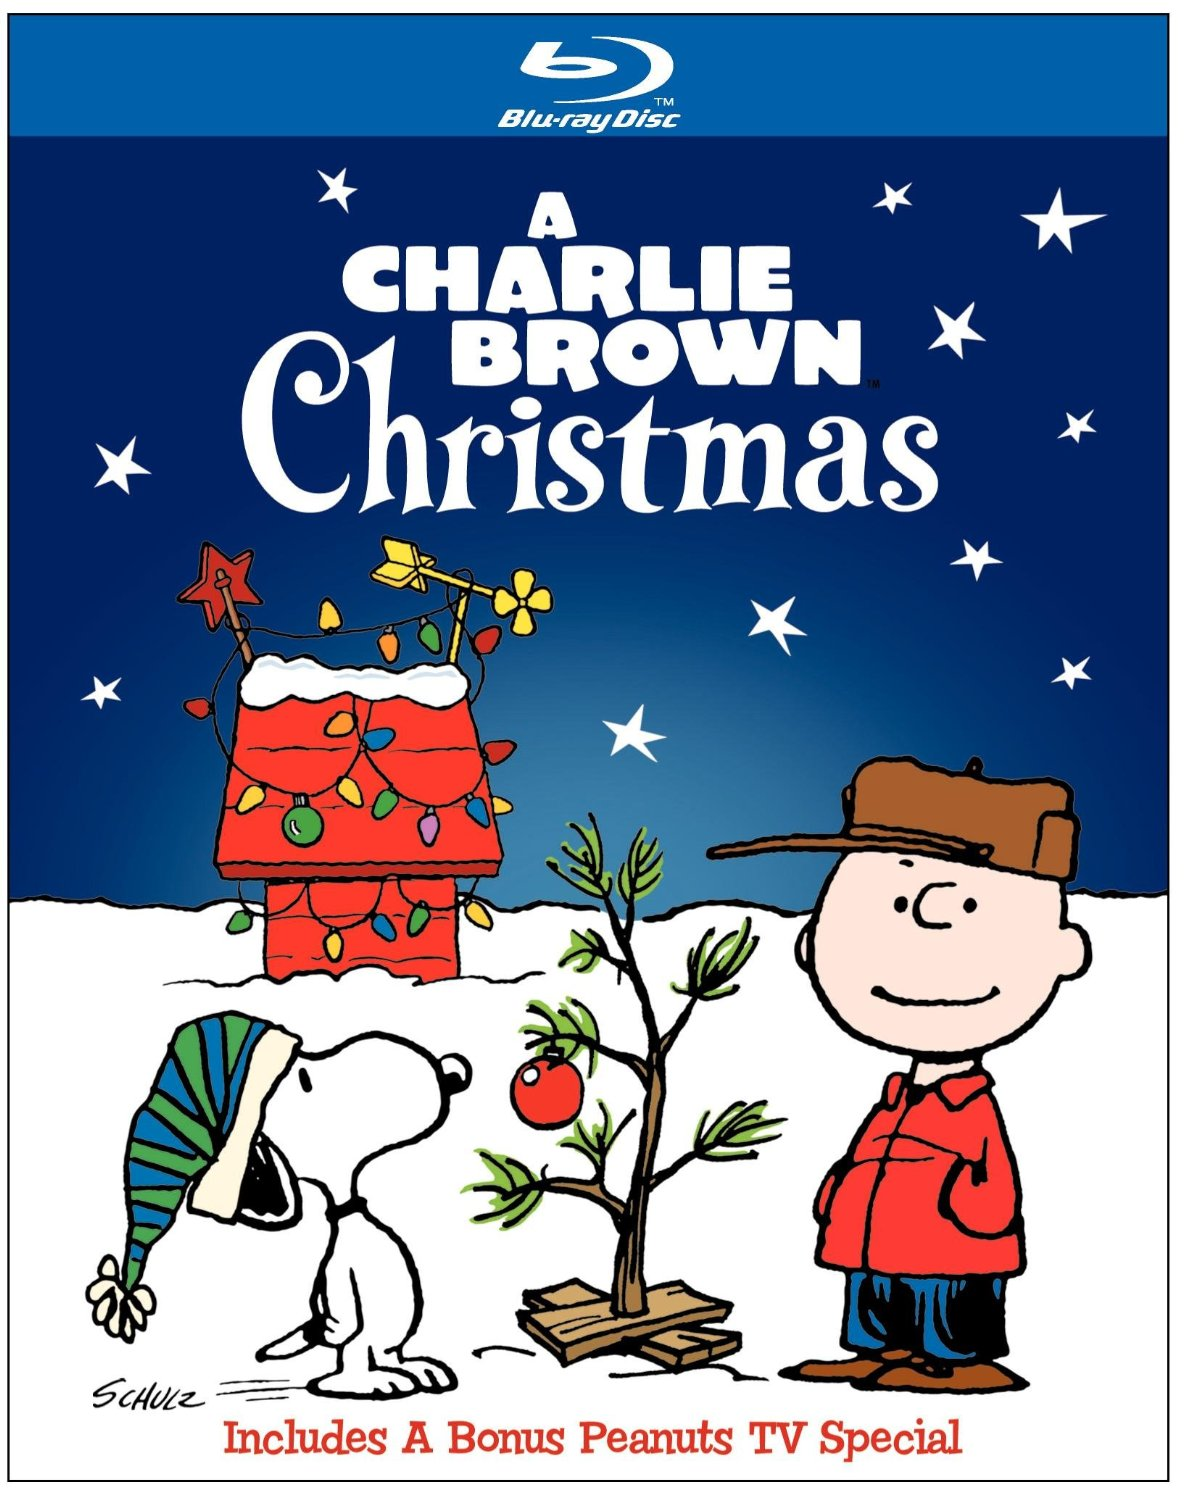 A Charlie Brown Christmas Deluxe Edition Blu-ray $9.96 ...